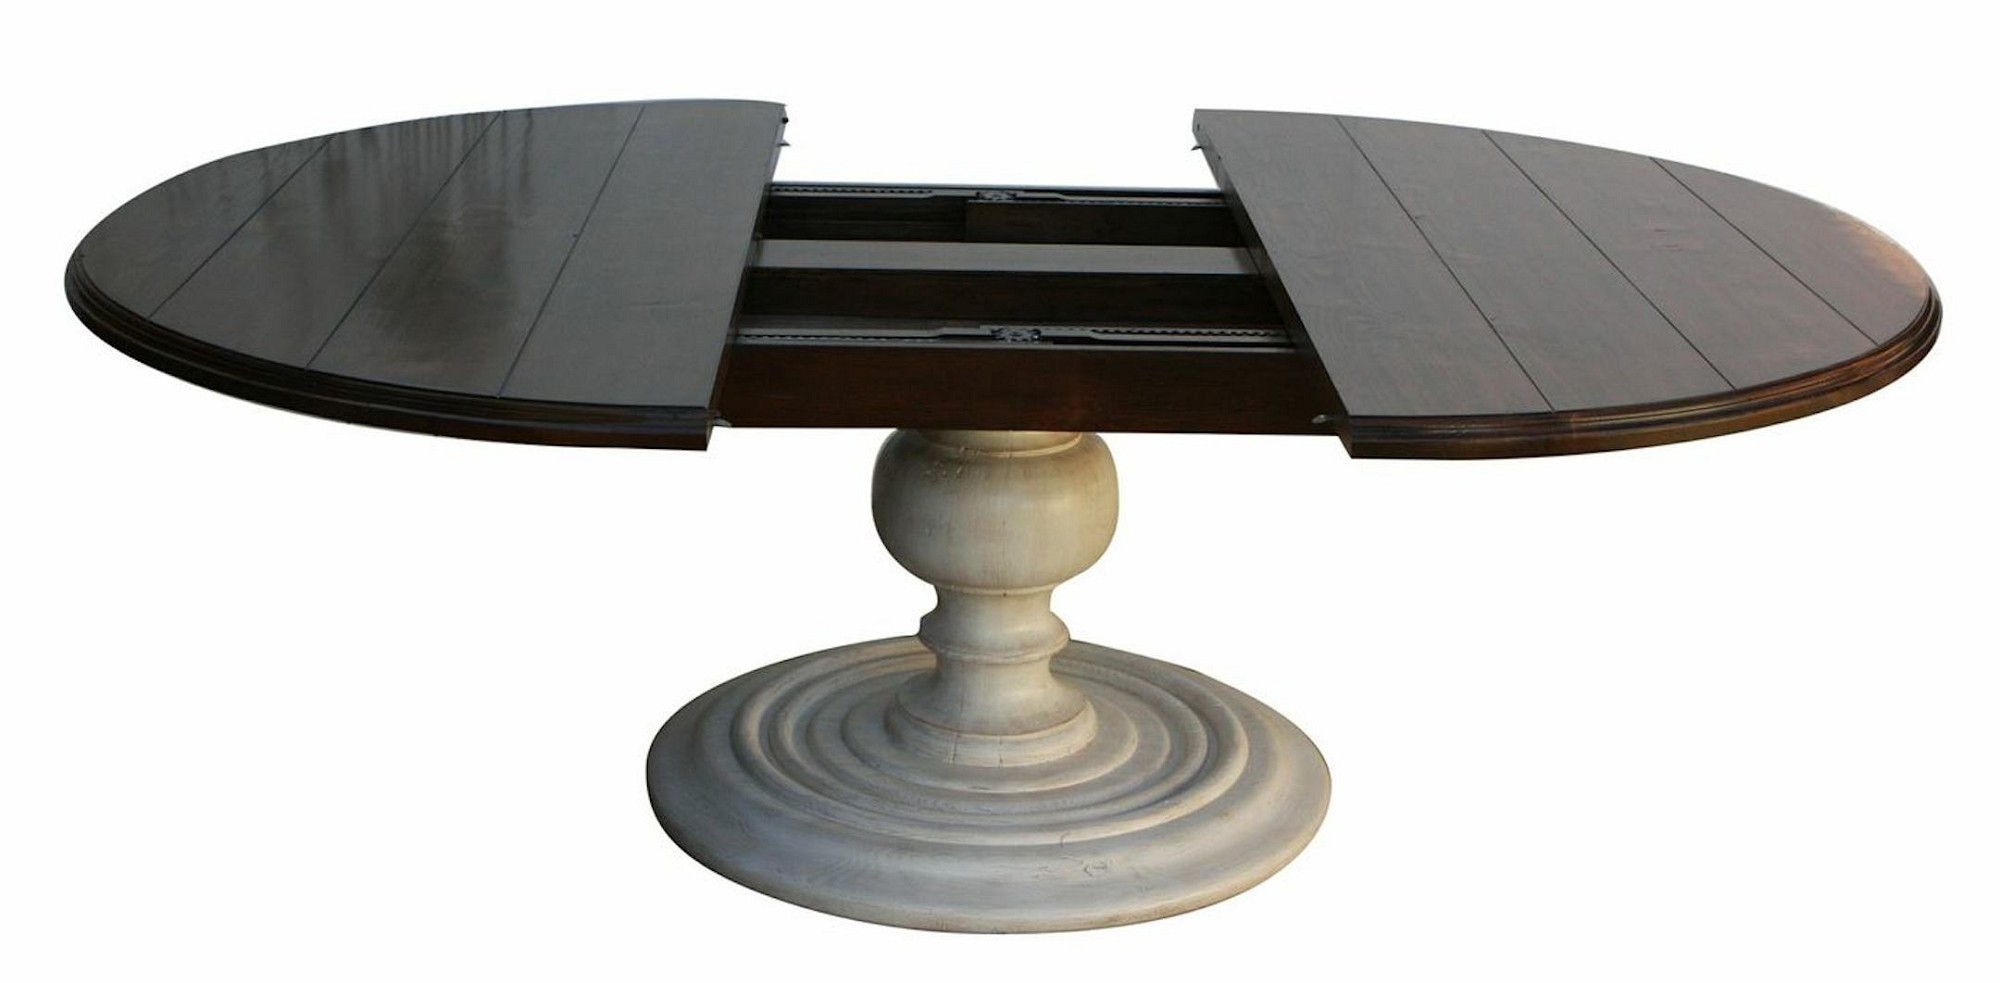 48 Round Pedestal Dining Table For Small Dining Room Spaces With Most Up To Date Blackened Oak Benchwright Pedestal Extending Dining Tables (View 8 of 25)